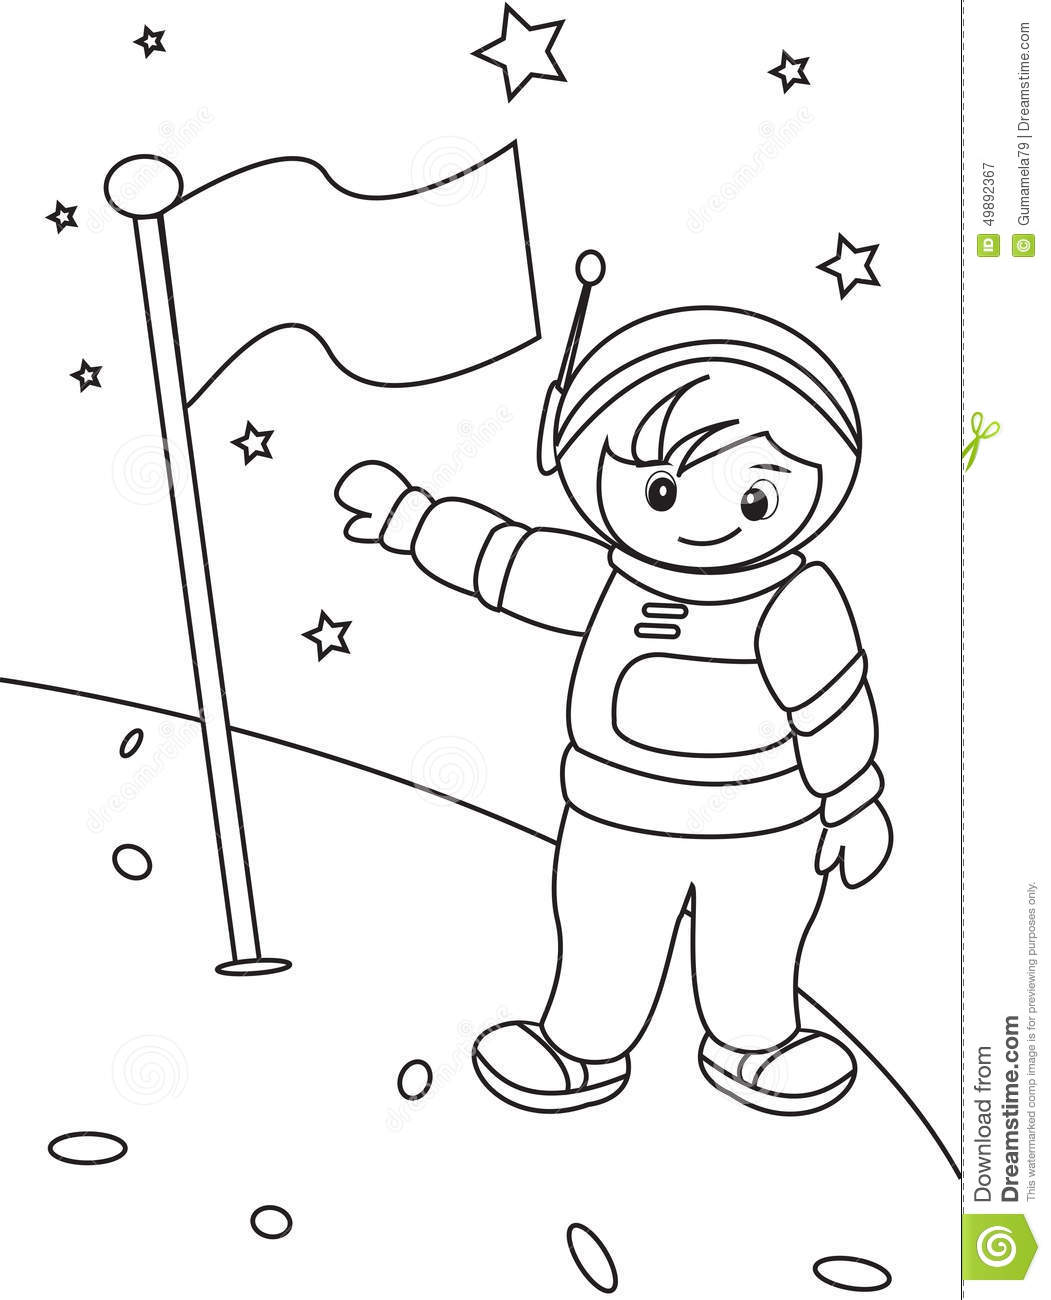 Astronaut coloring page stock illustration. Illustration of design ...